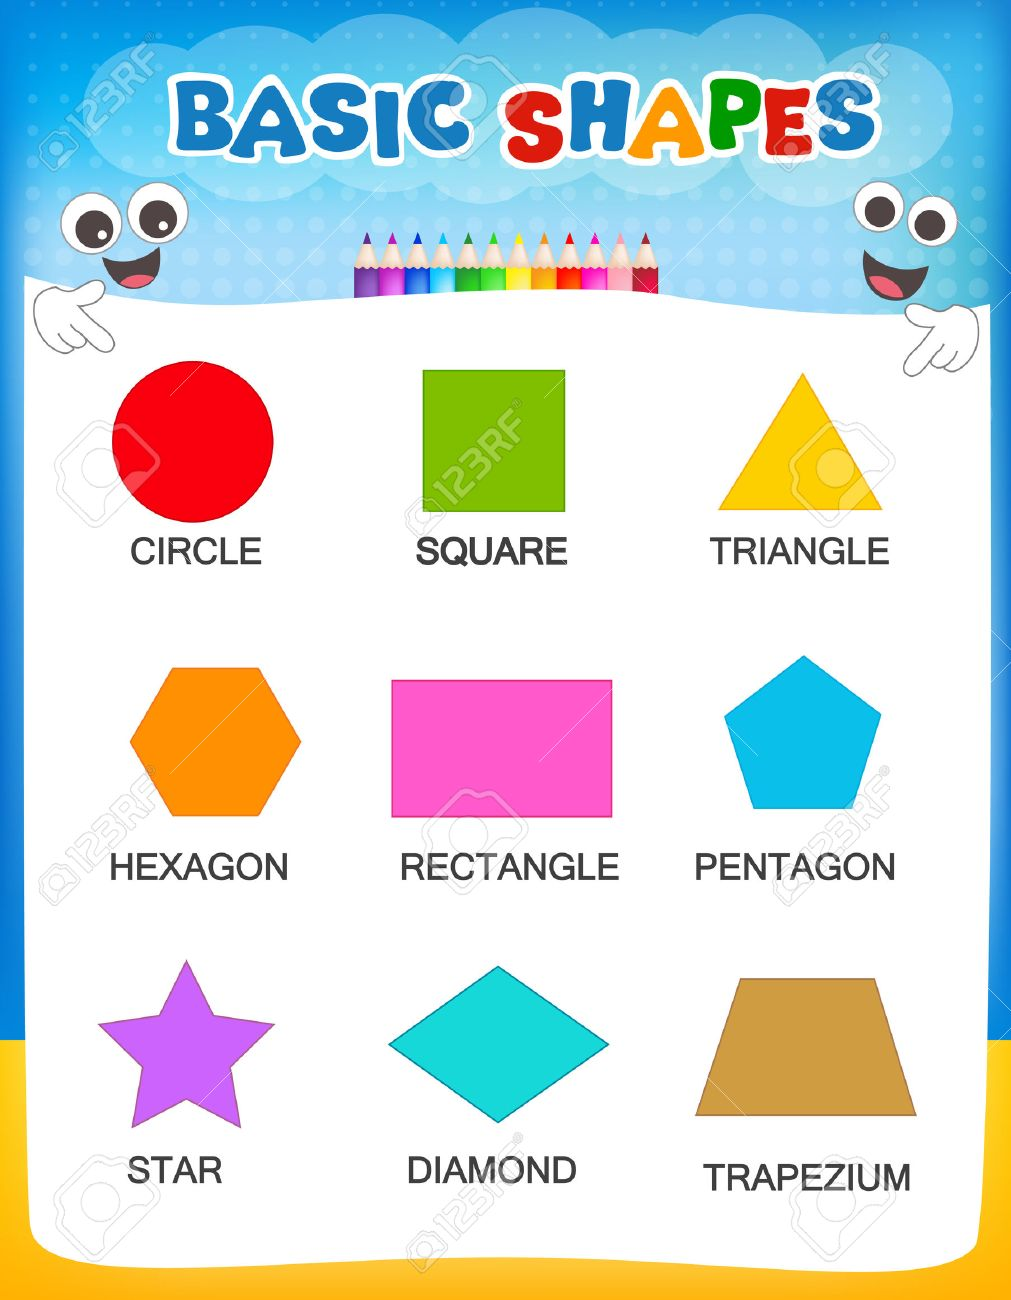 worksheet Shapes And Their Names collection of colorful geometric shapes and their names illustration isolated on white background for preschool